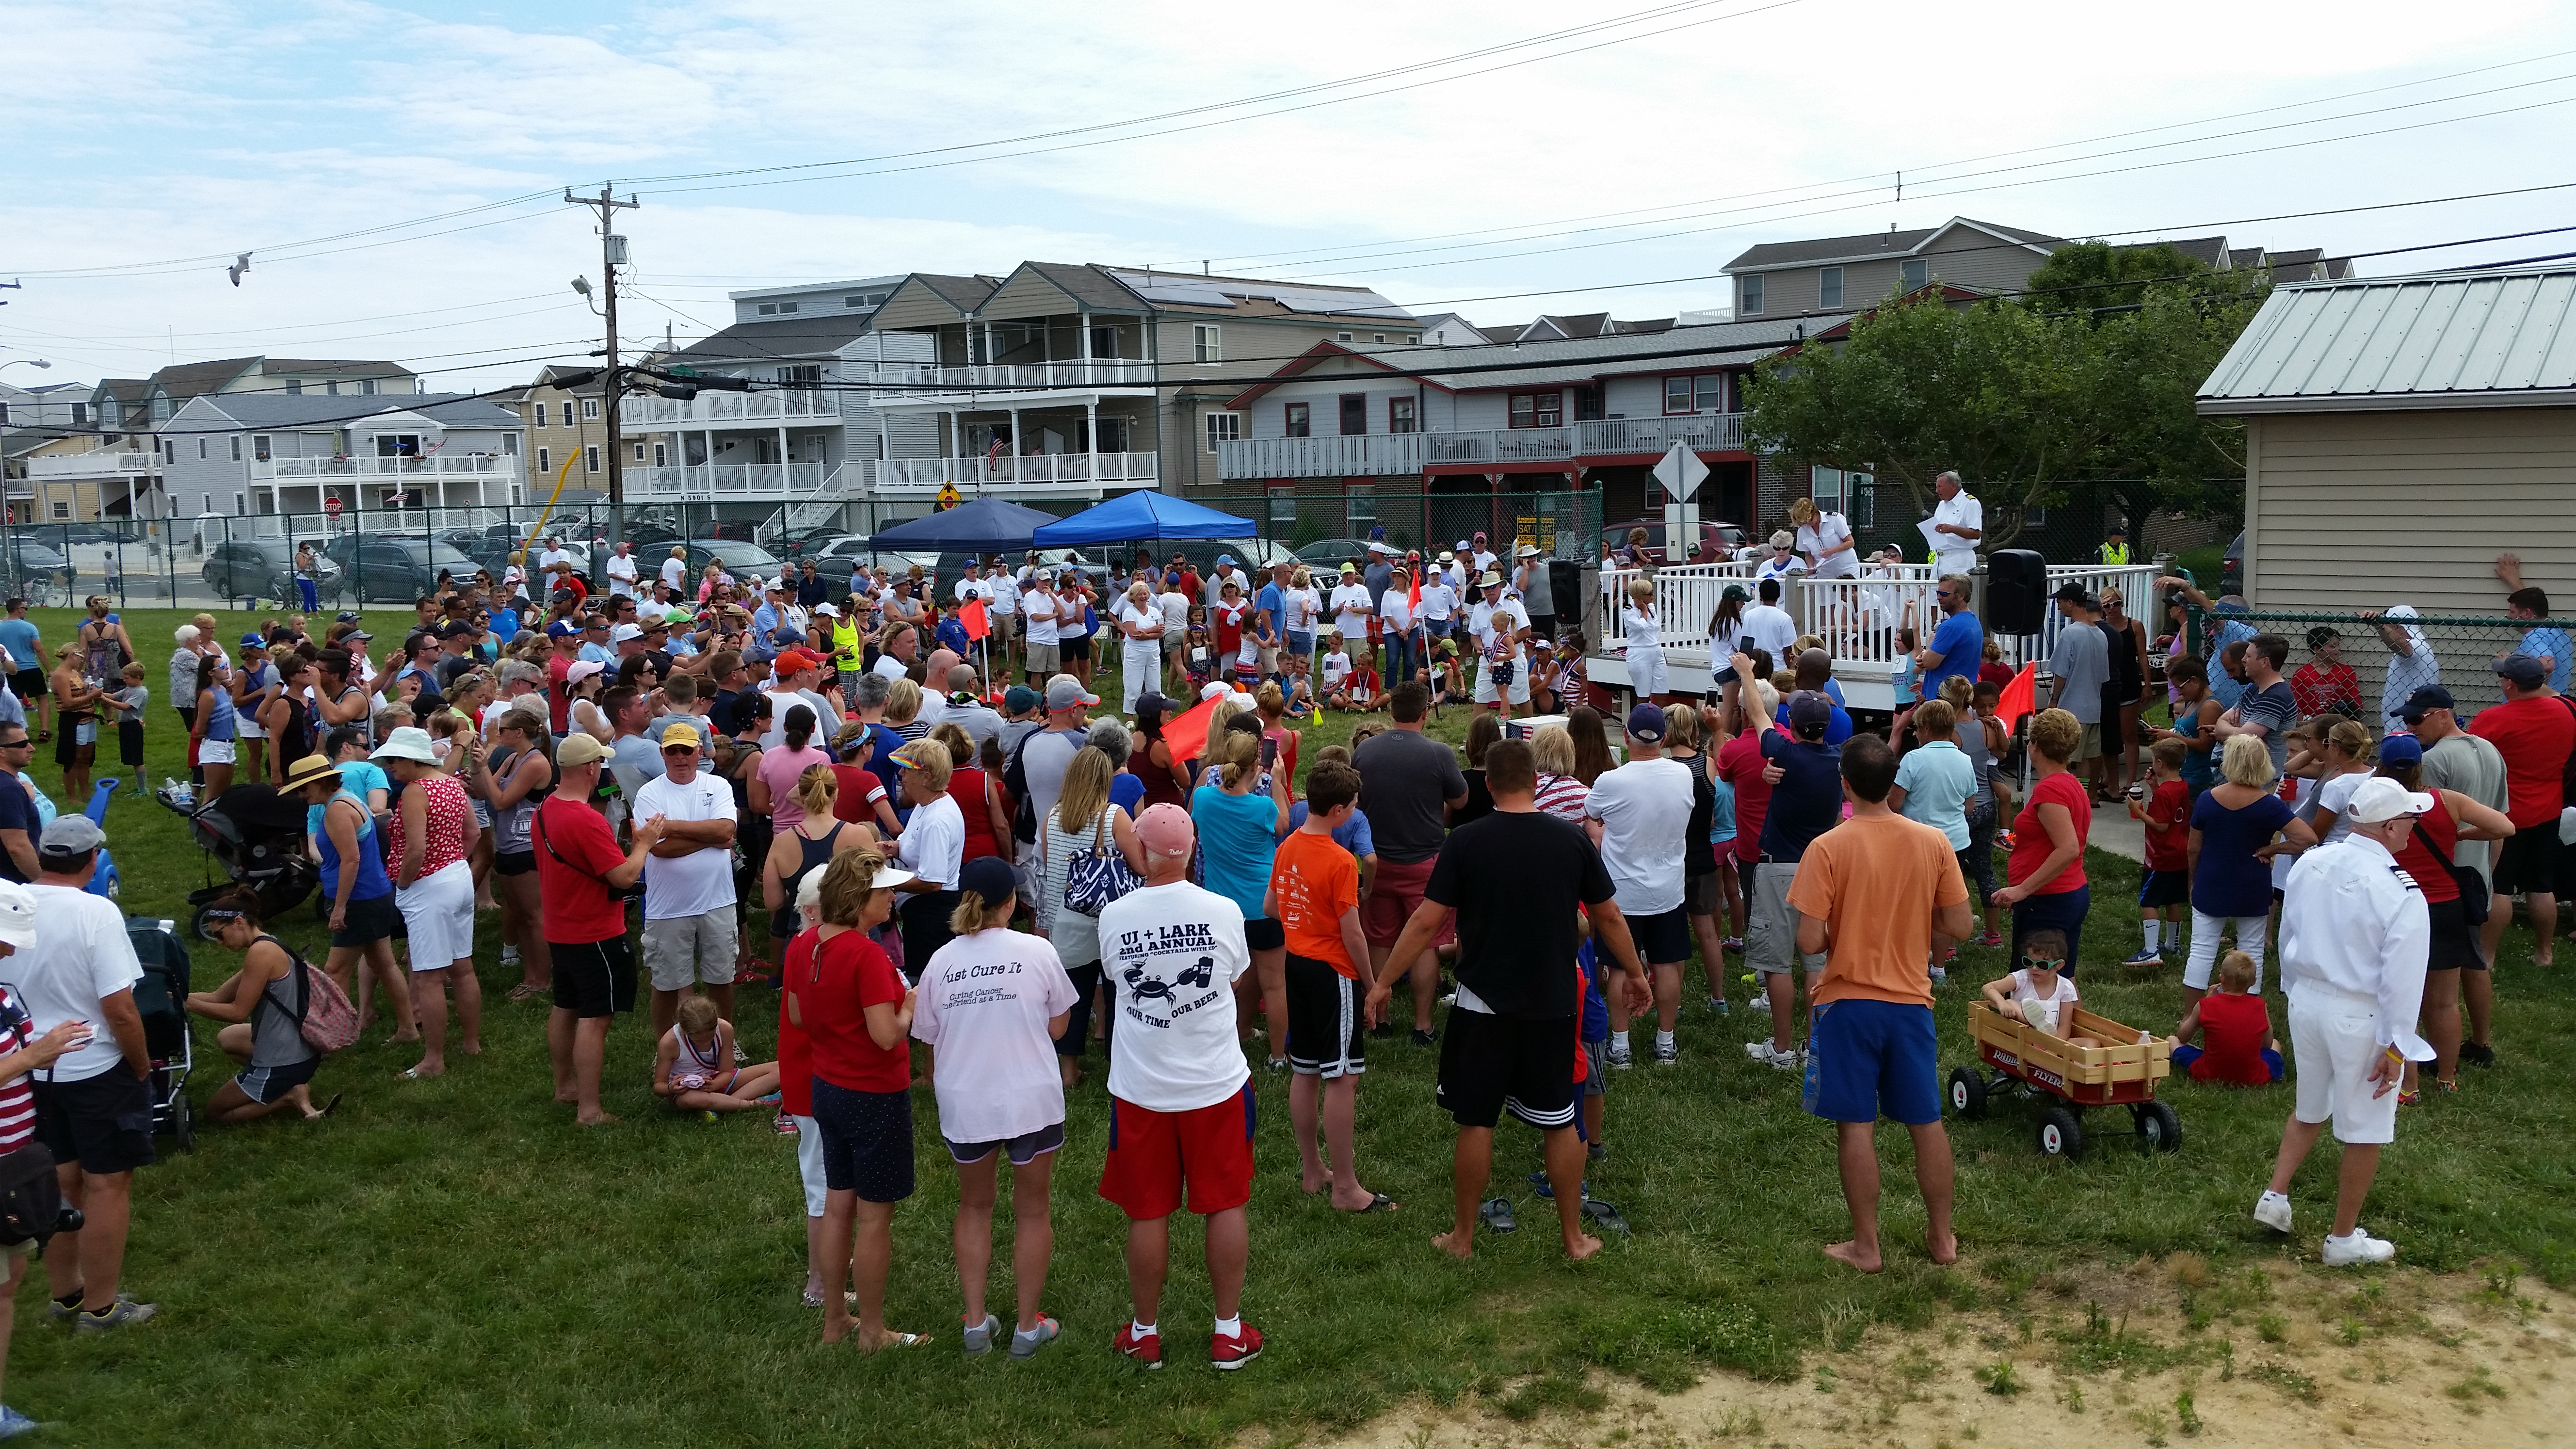 An estimated 600 to 700 children turned out for the Junior Olympics, a Fourth of July tradition in Sea Isle City.